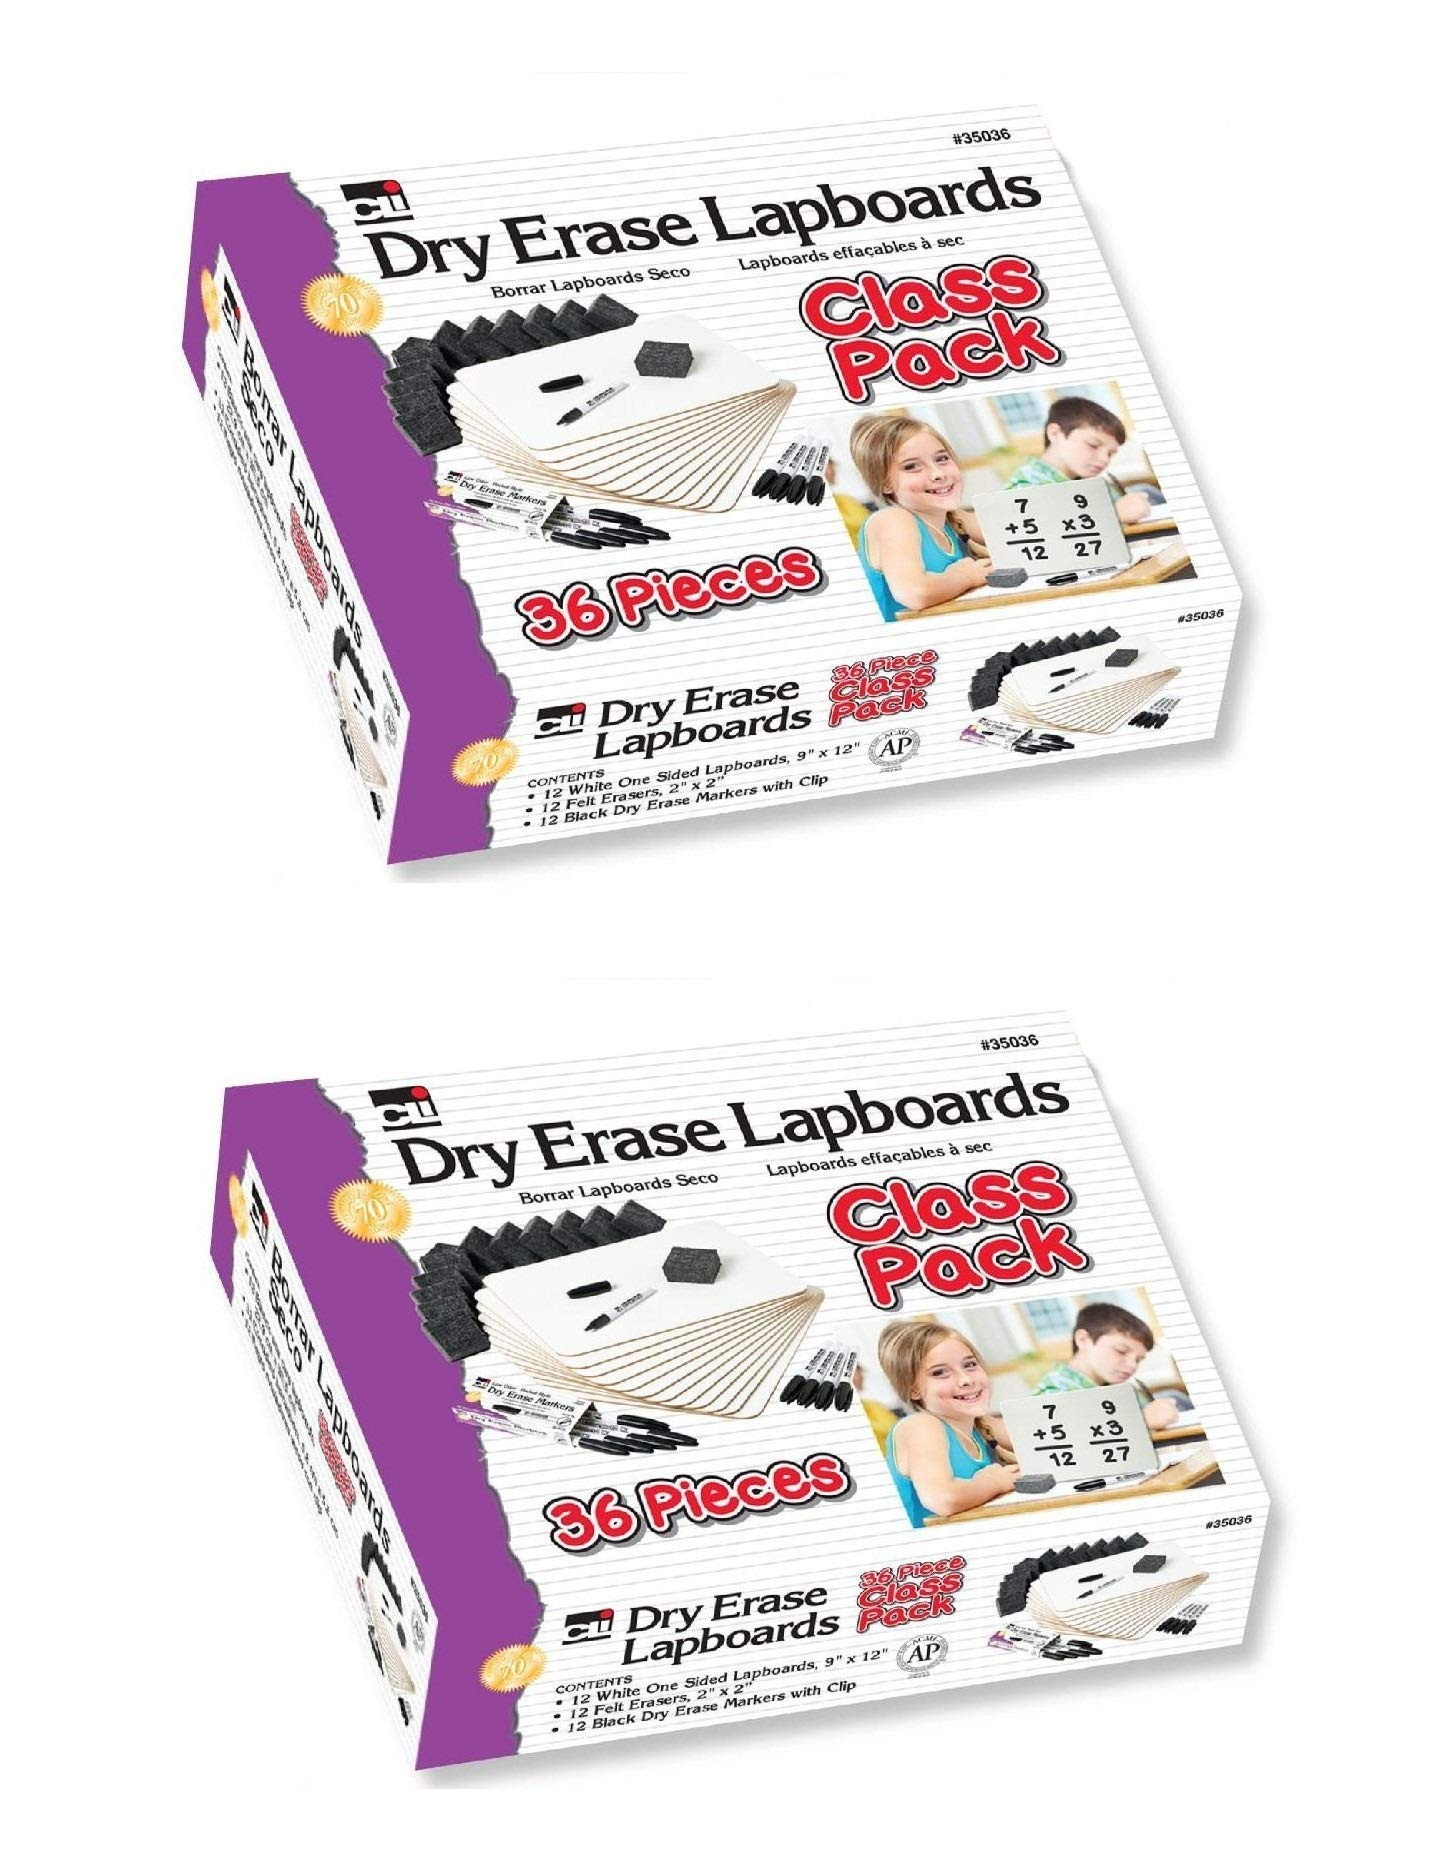 Charles Leonard Dry Erase Lapboard Class Pack, Includes 12 each of Whiteboards, 2 Inch Felt Erasers and Black Dry Erase Markers, Sold As 2 Kits (35036)